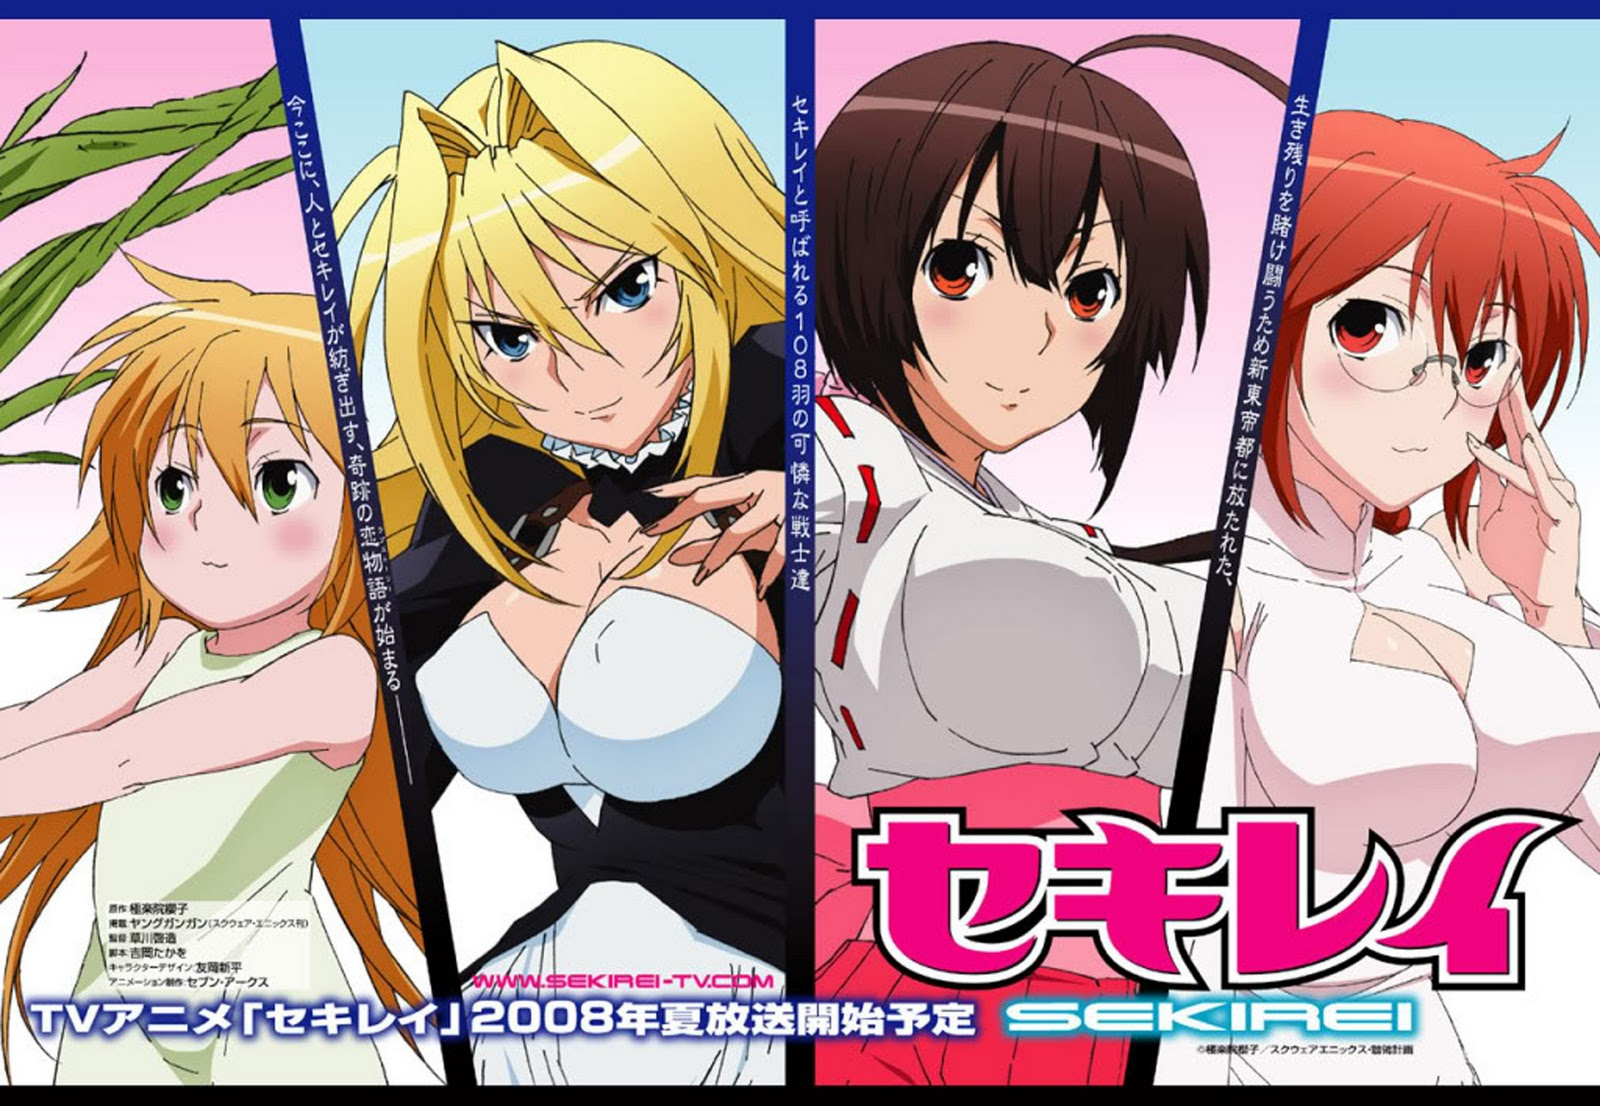 http://3.bp.blogspot.com/-oj-LGpZhs5Q/TtwwMPXzYdI/AAAAAAAACkY/yY__k4zFfY8/s1600/sekirei+01+big+boobs+busty+battle+vixens+huge+tits+cartoon+action+ecchi+female+characters+2.jpg